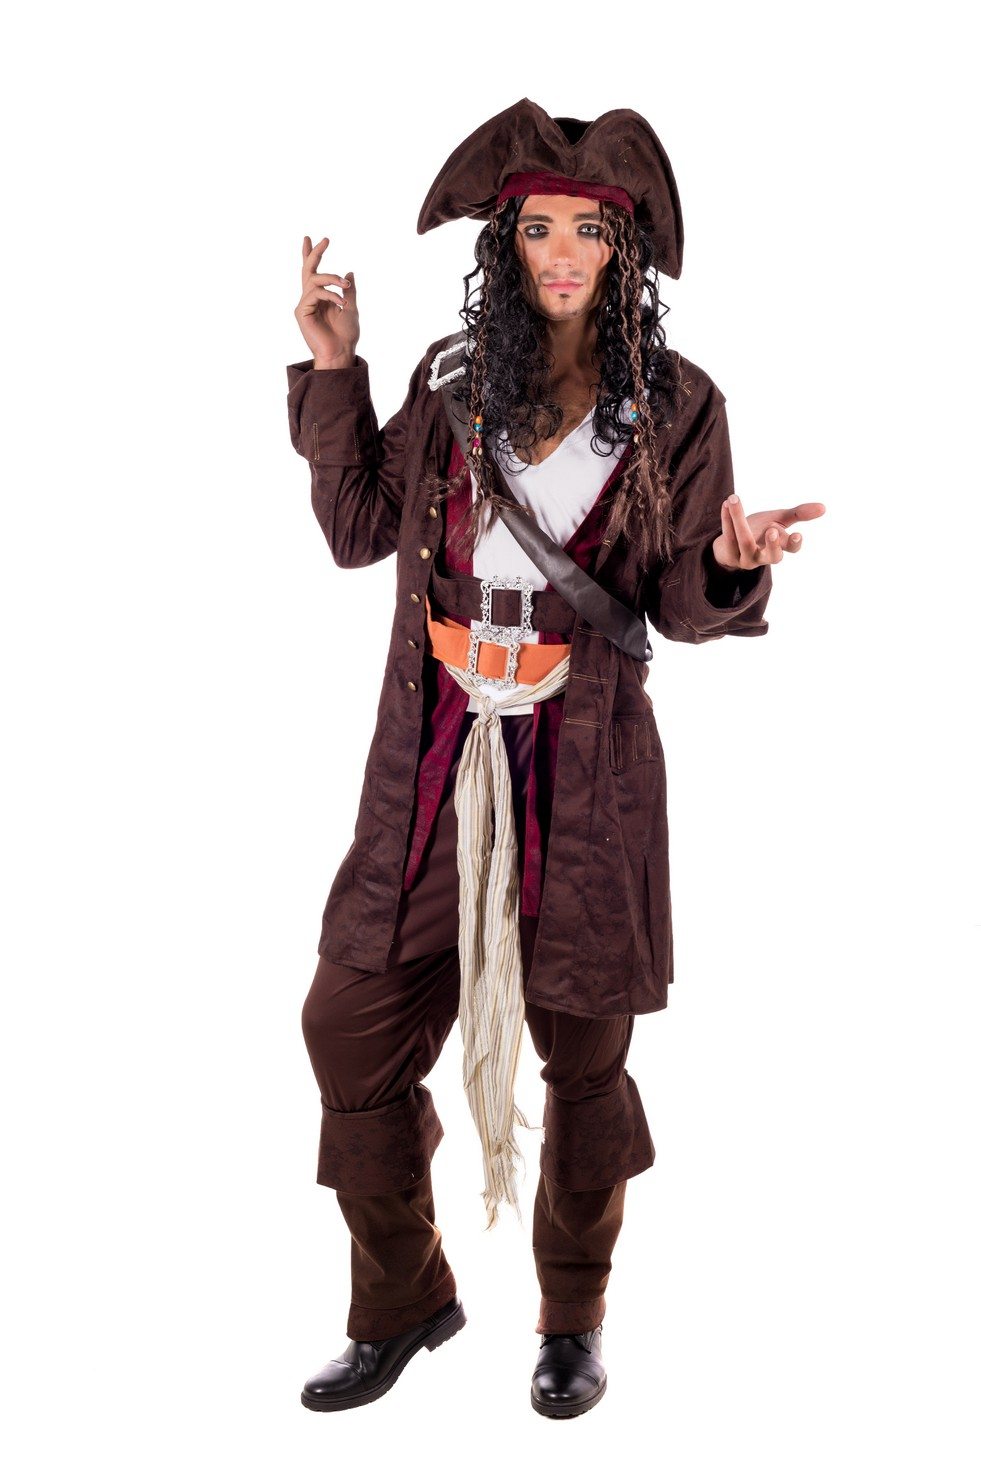 Jack M Pirate Zu Caribbean Xl Details Mens Dress L Wig Fancy Sparrow CostumeHat Captain D9IH2EW